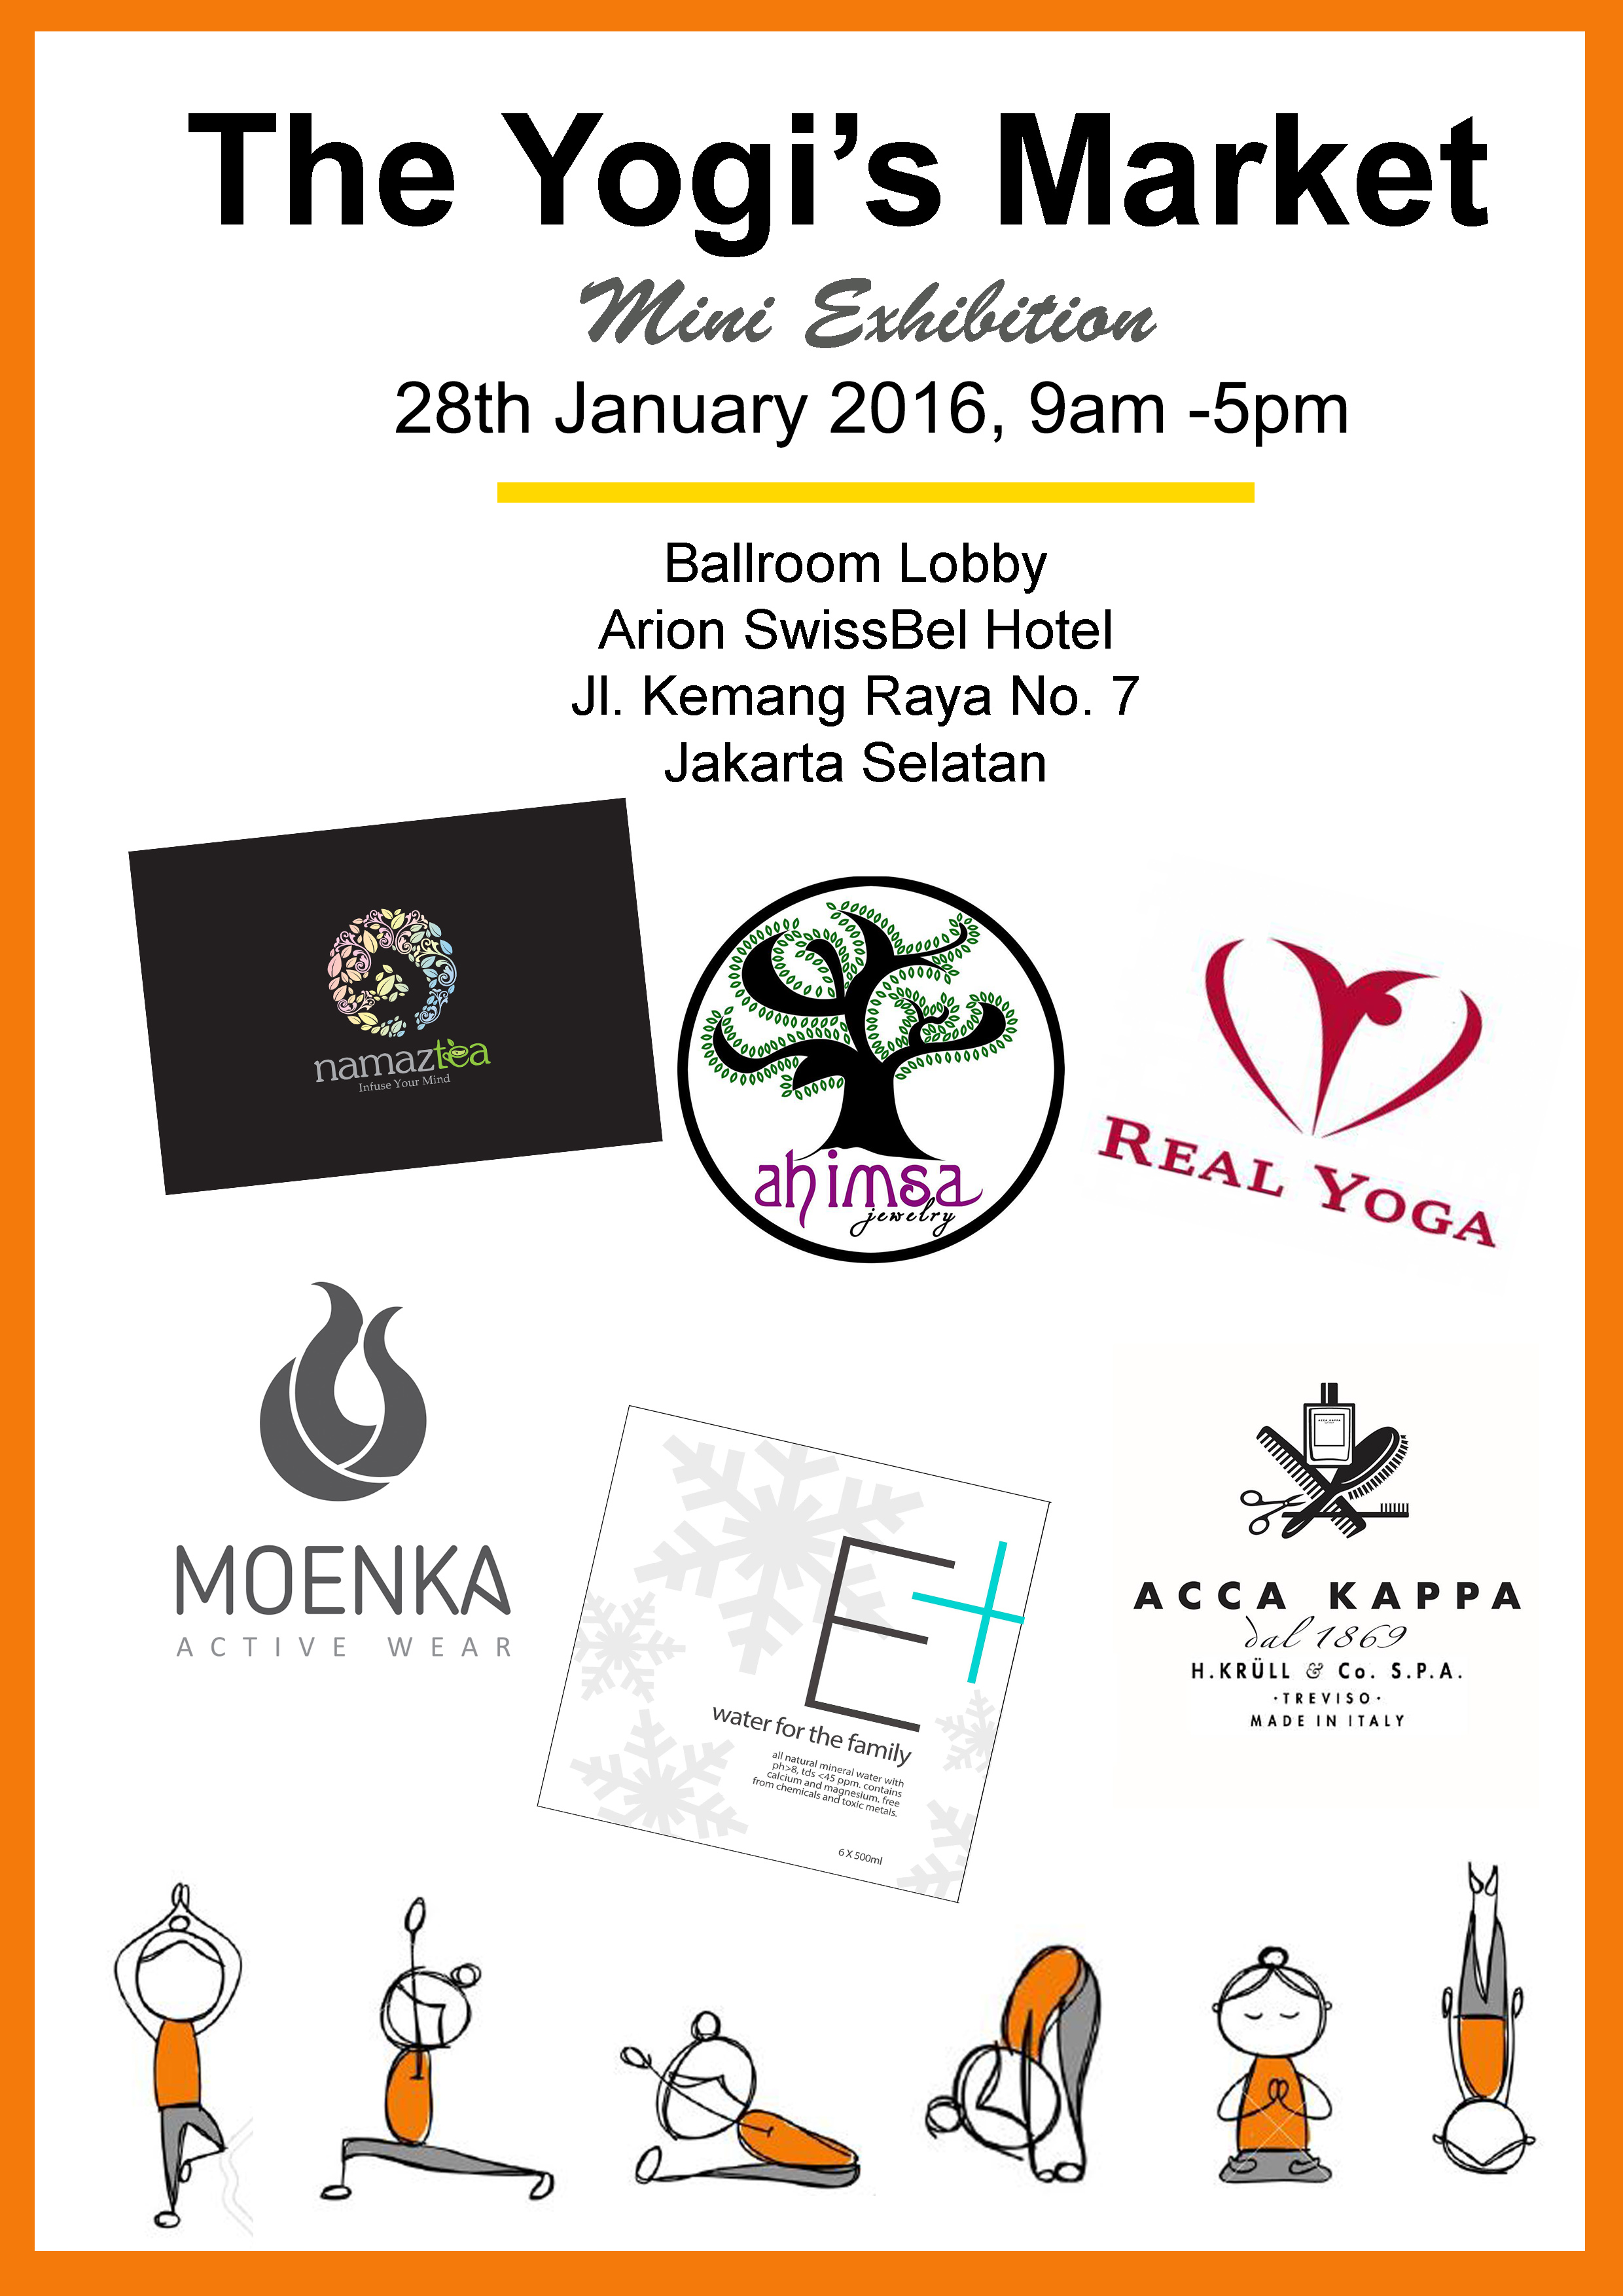 The Yogis Market - 28th January 2016